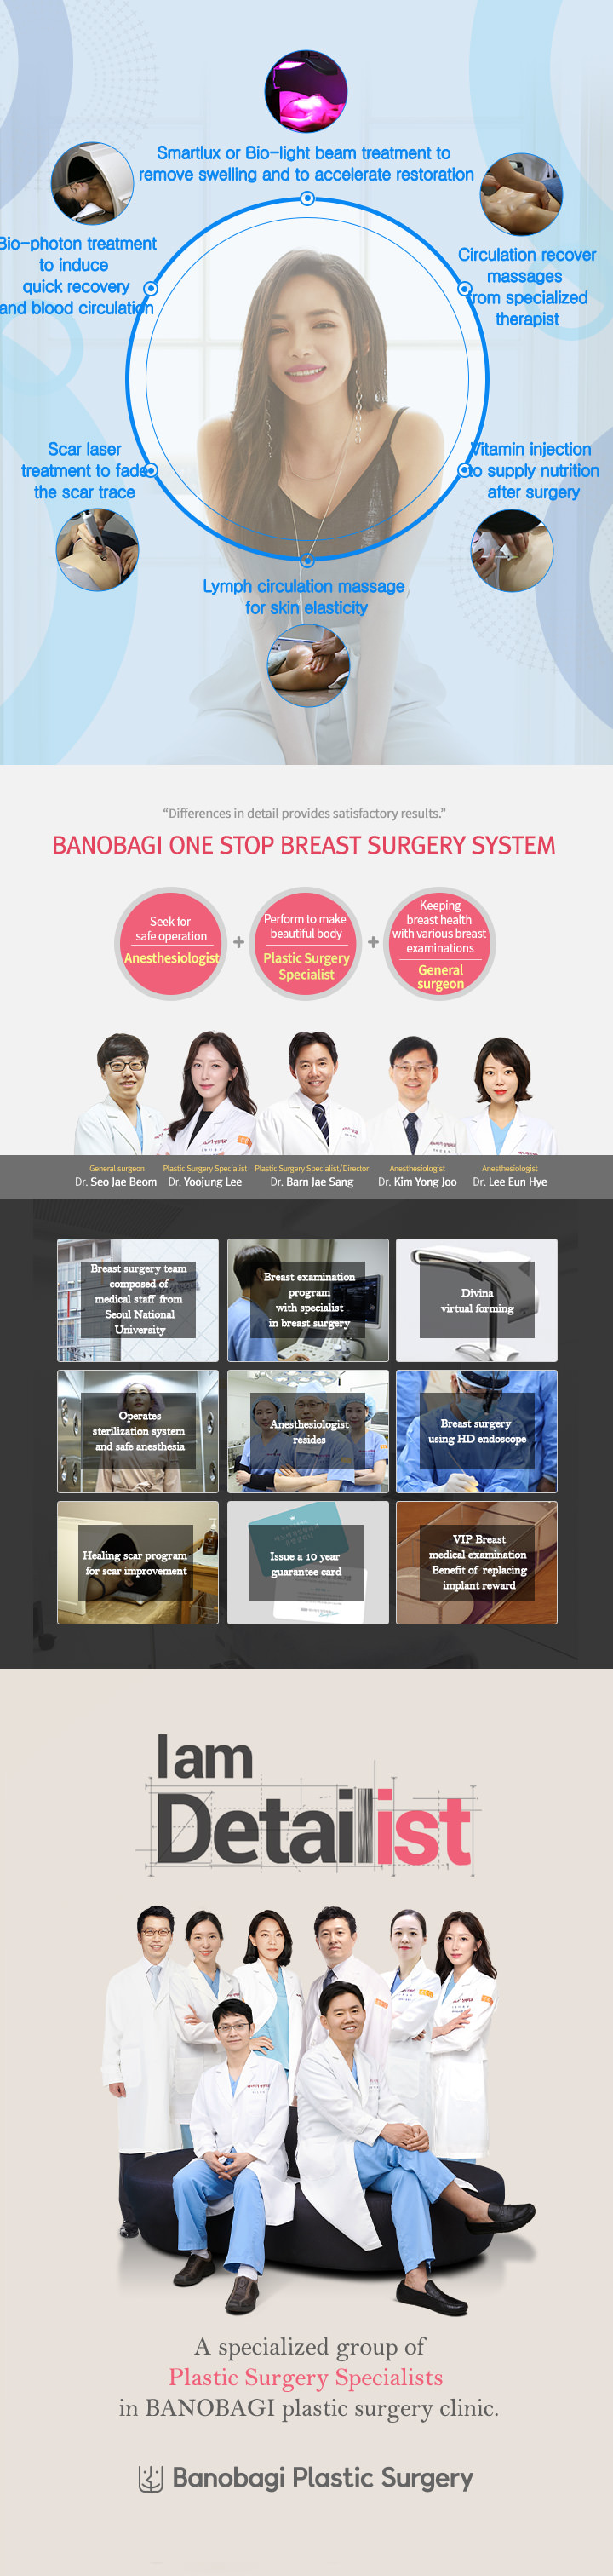 A specialized group of Detailist Plastic Surgery Specialists from Seoul National University in BANOBAGI Plastic Surgery Clinic.